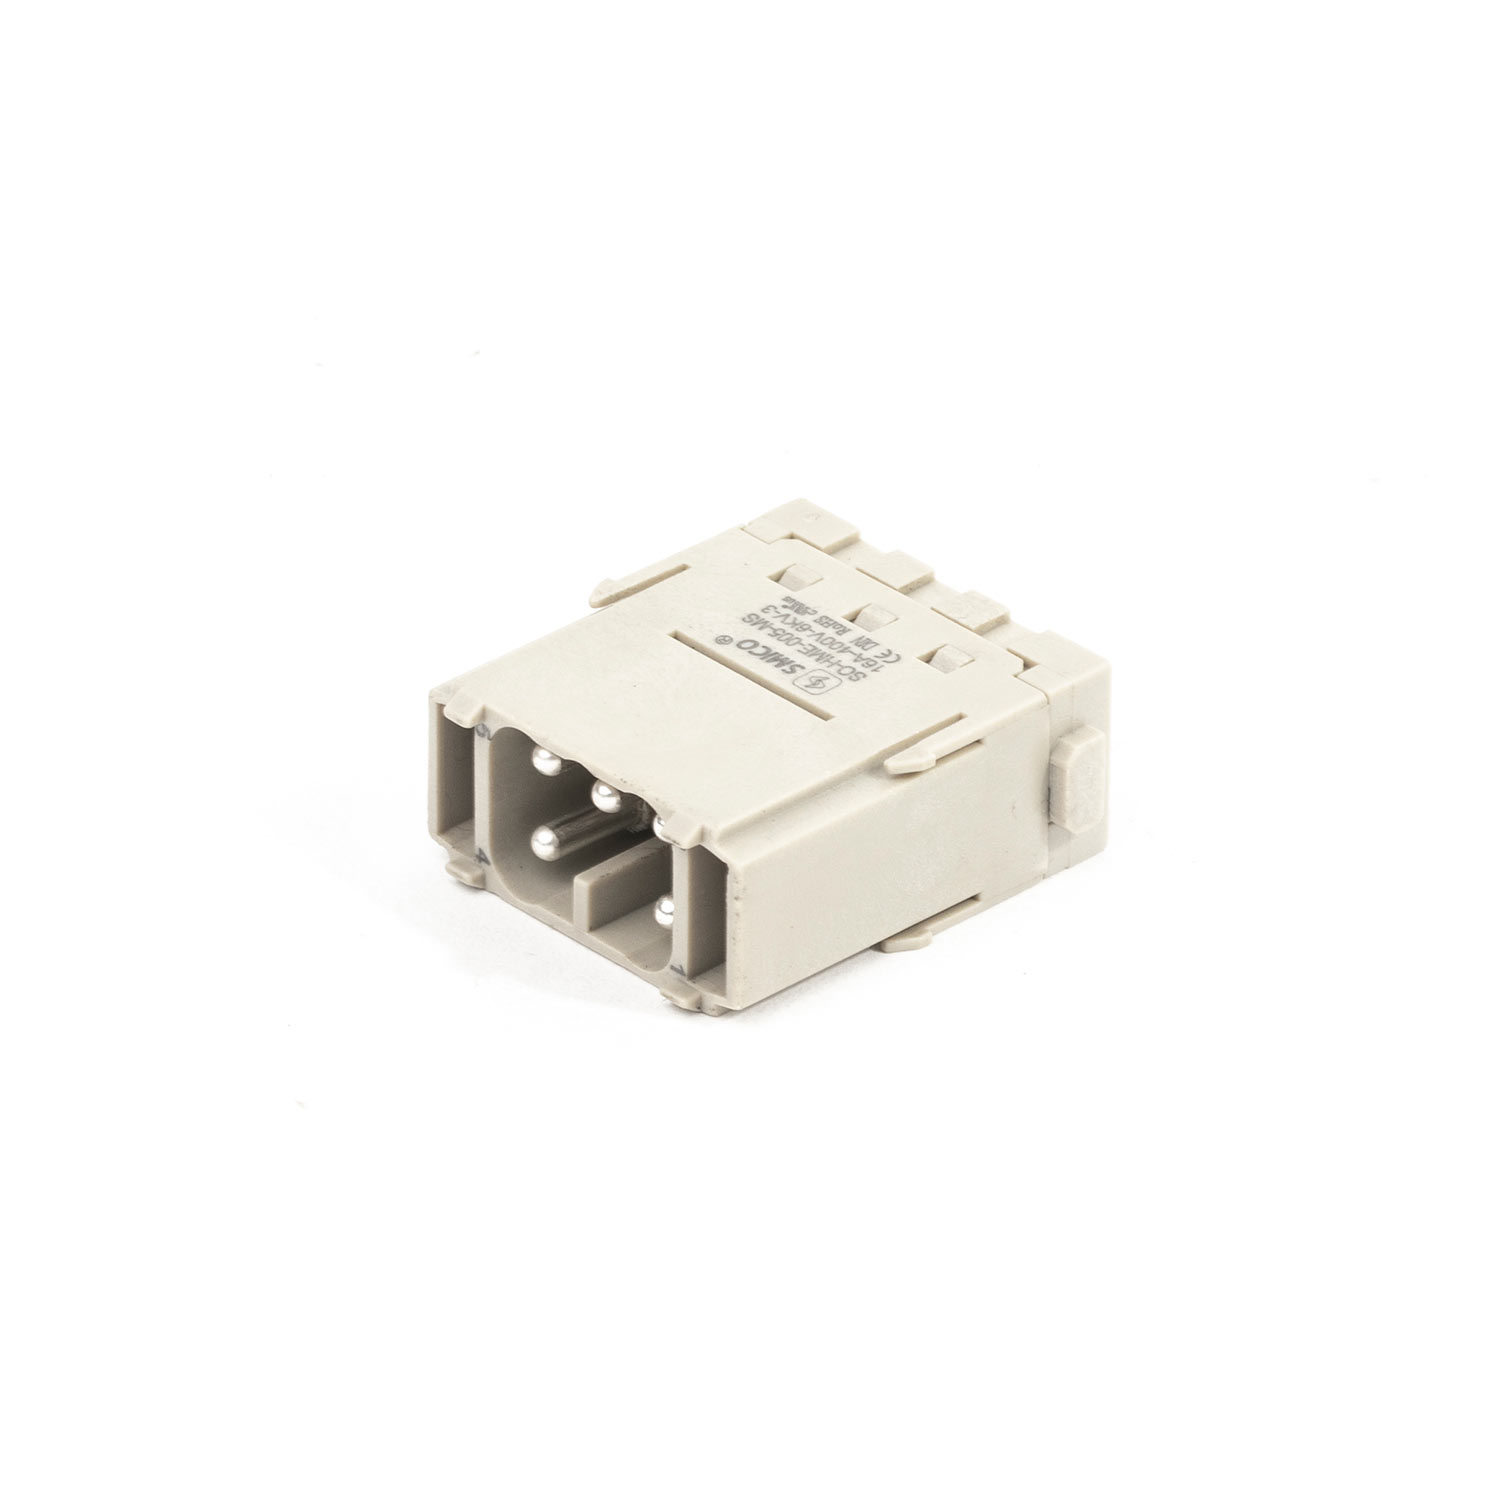 Hme-005 Cage-Clamp 5 Pin Module Electrical Connector